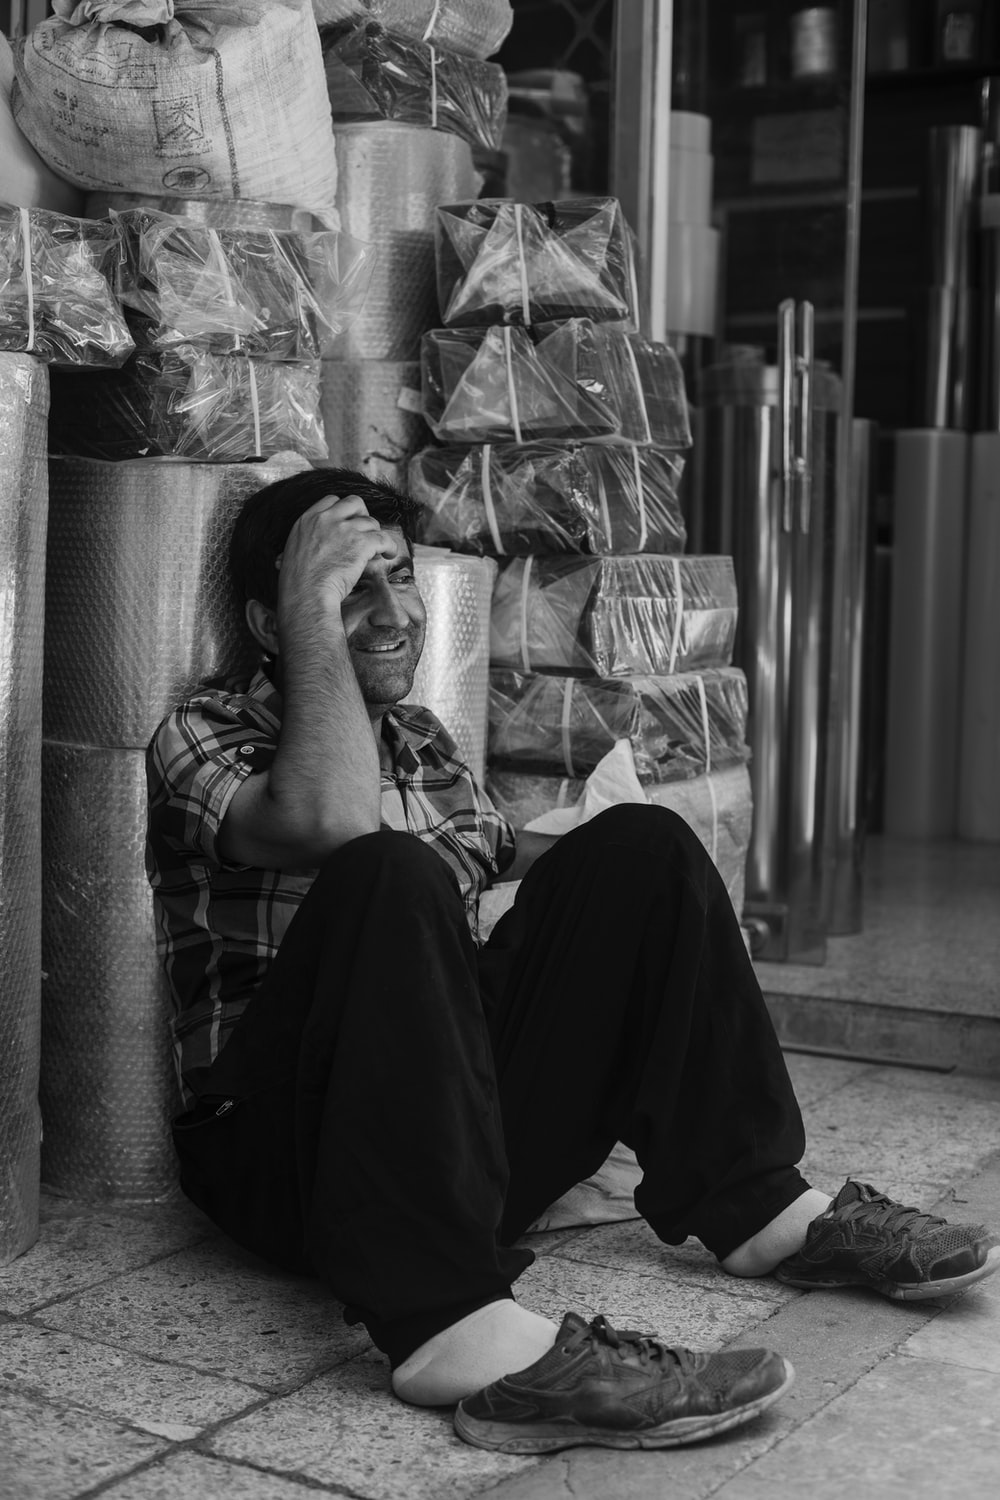 grayscale photography of man sitting on floor